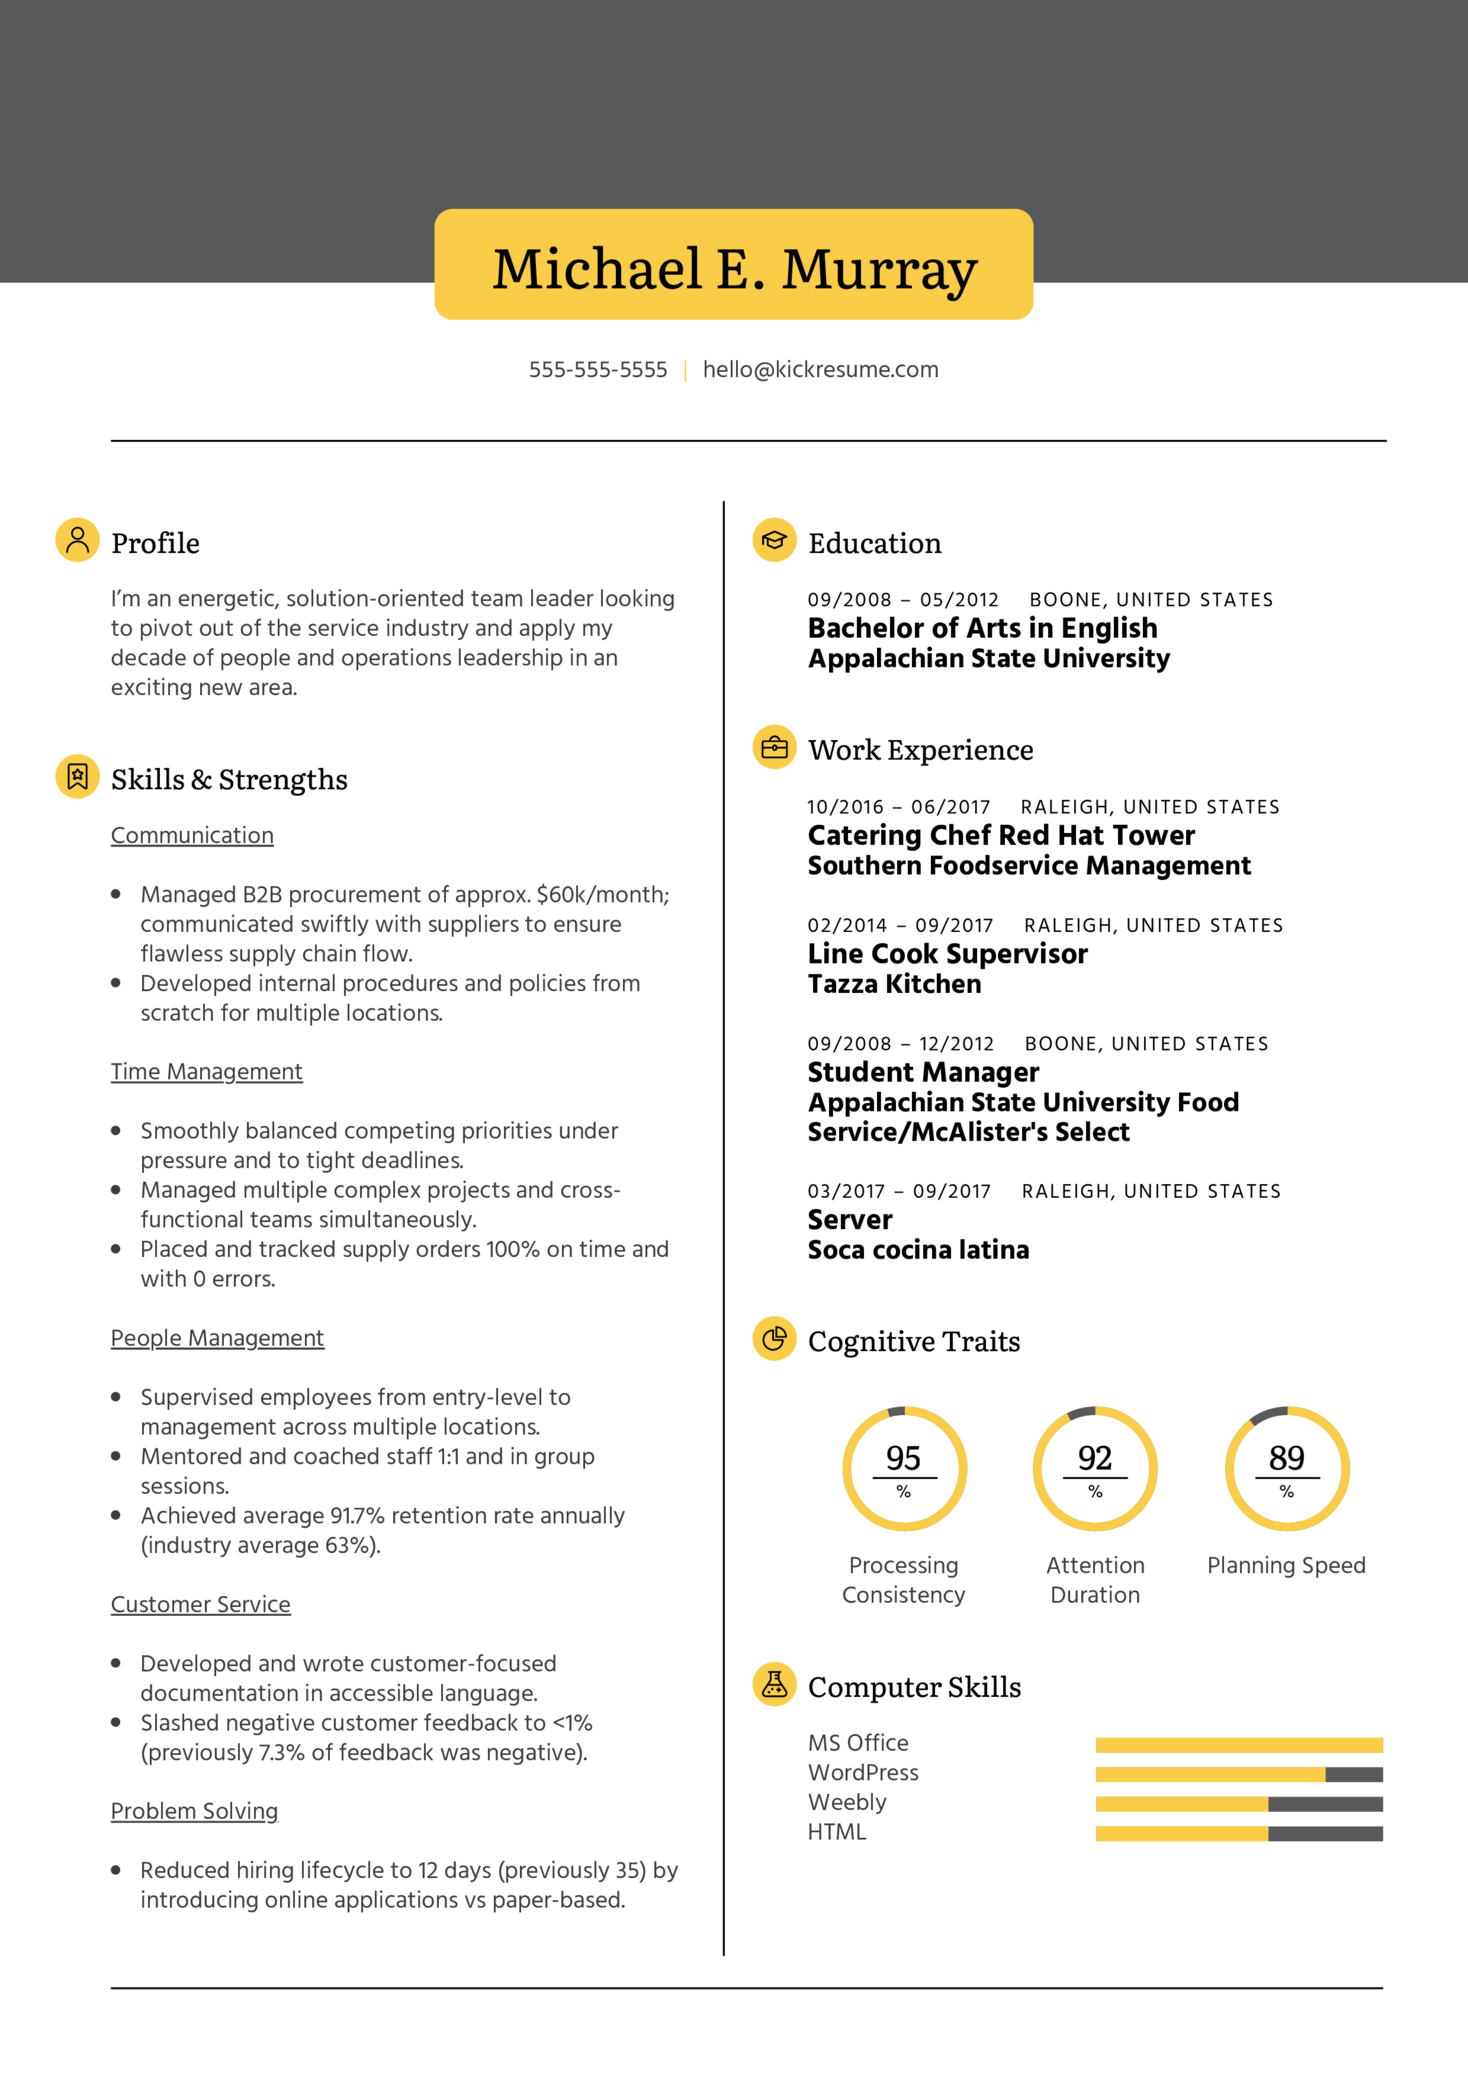 resume examples by real people  line cook supervisor cv sample